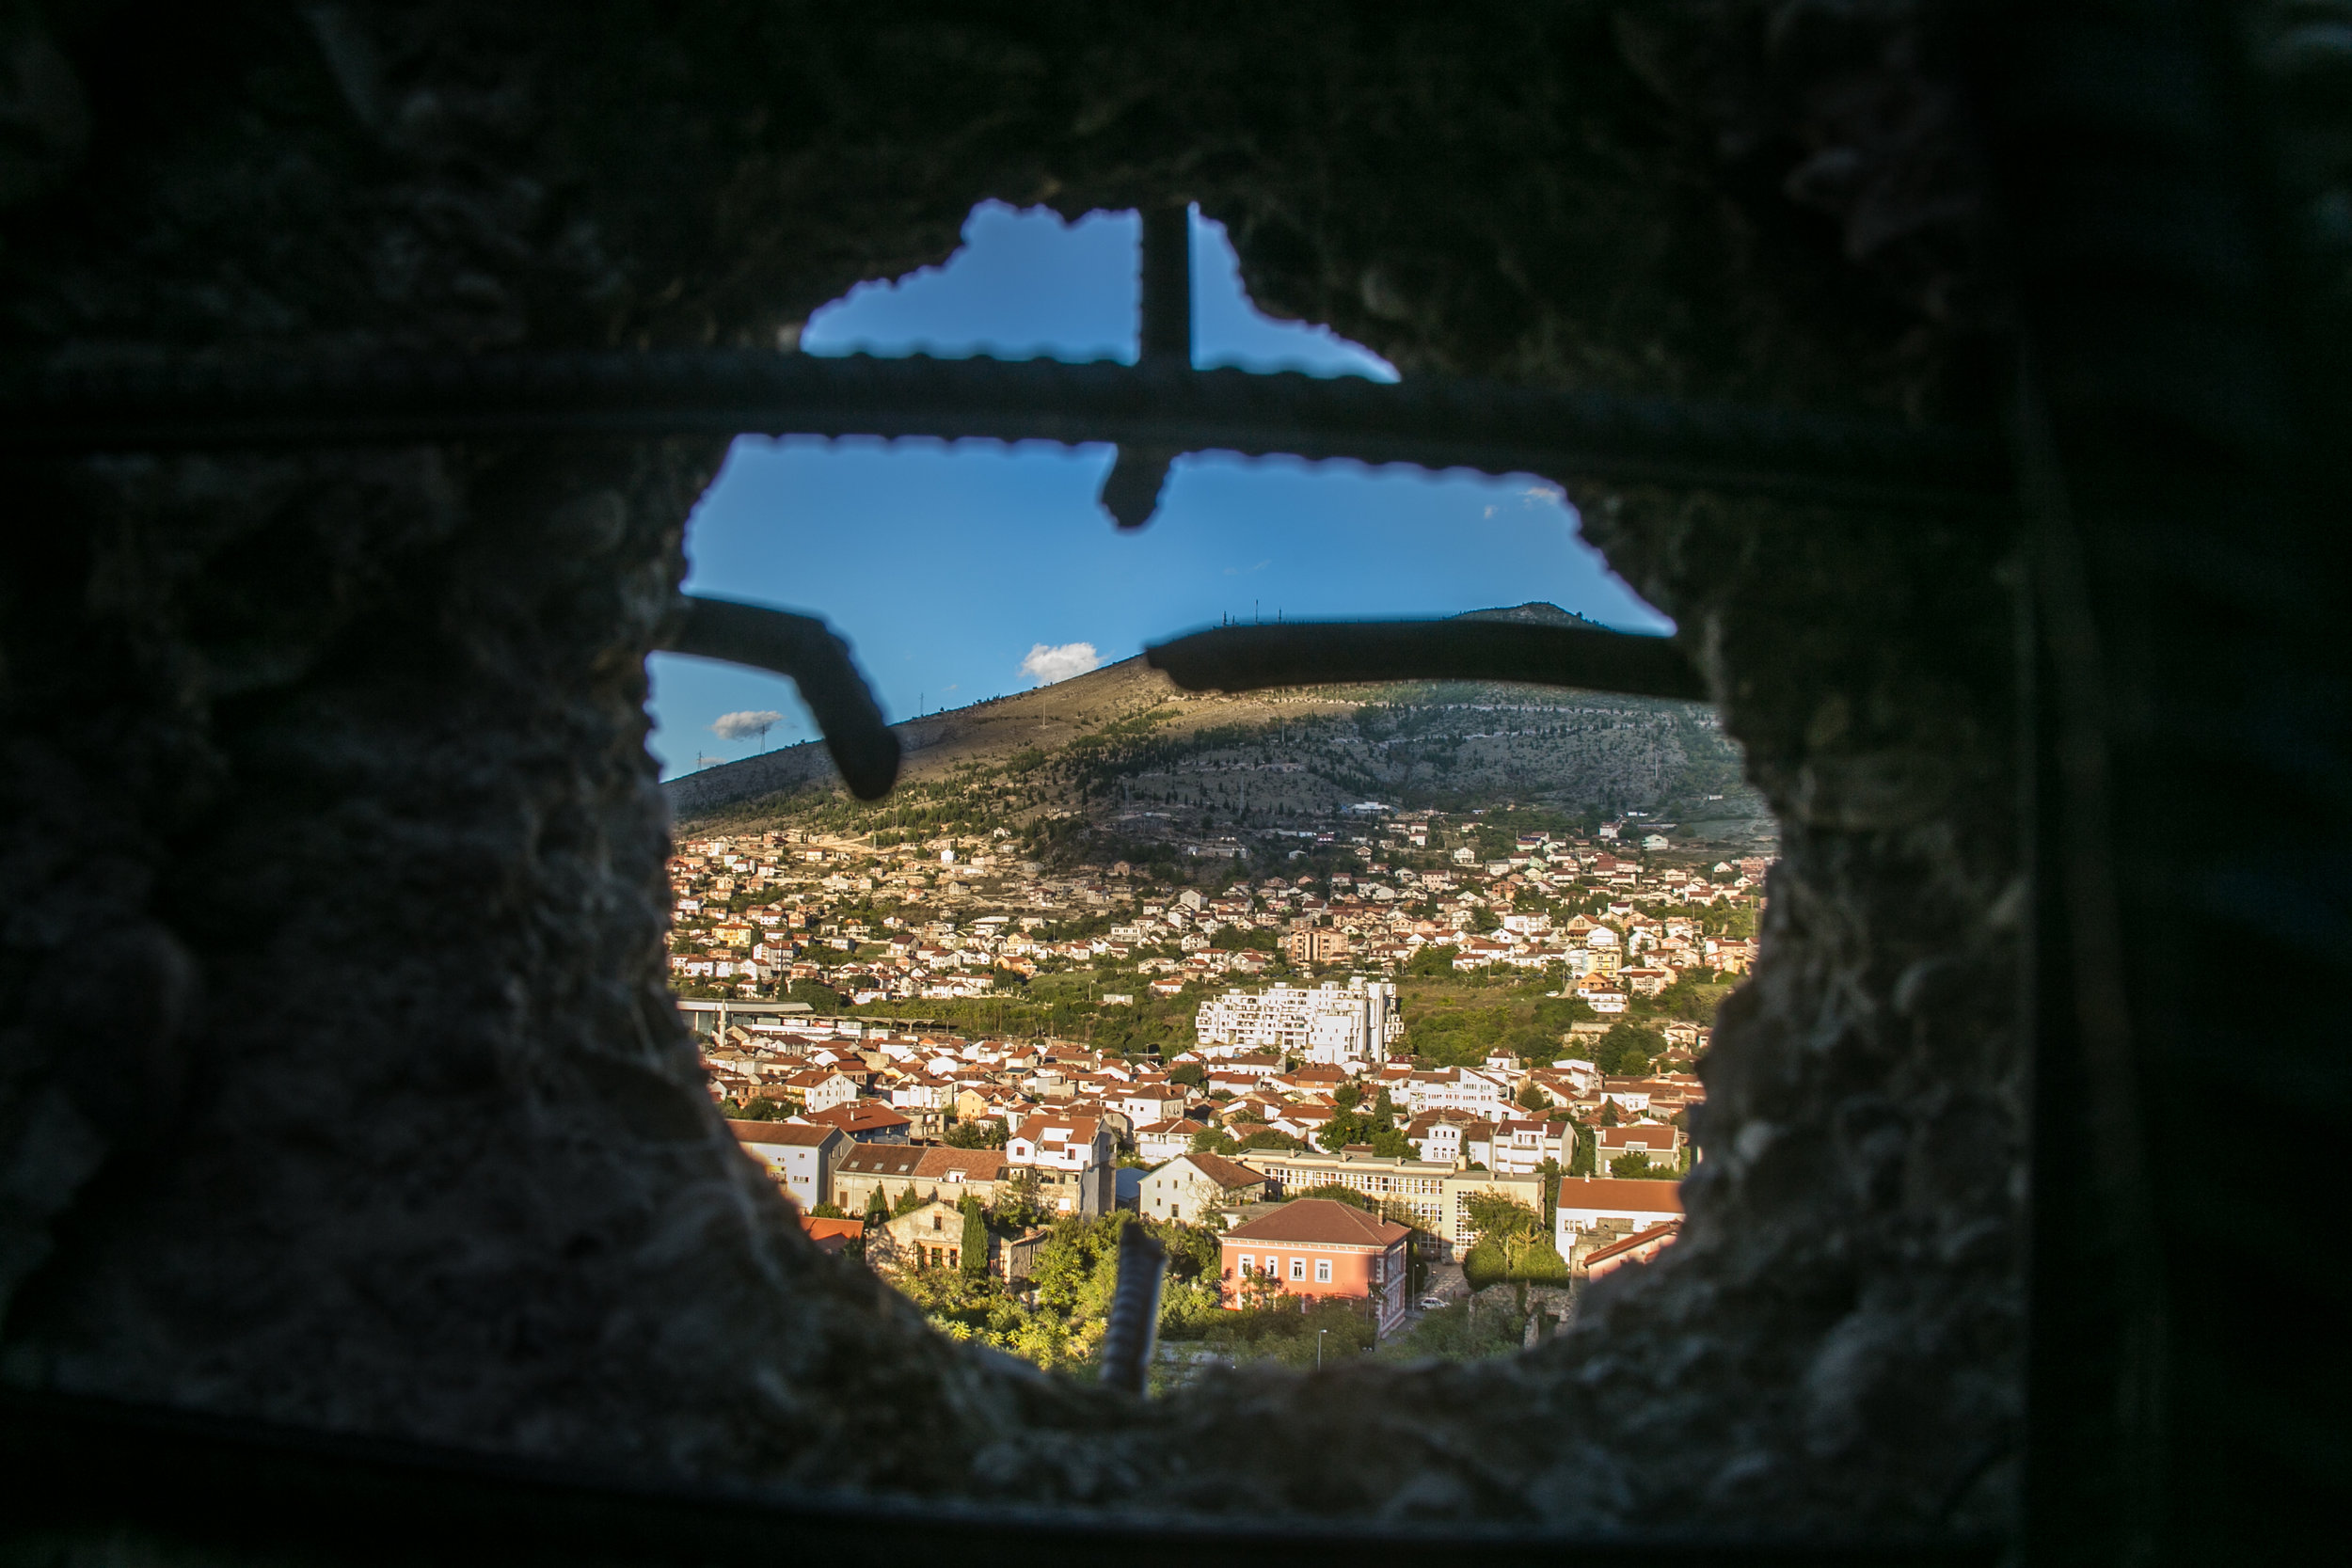 A sniper hole punched in the wall of an old bank building looks over the neighborhoods of Mostar, Bosnia. The bank was repurposed during the Bosnian War in an attempt to help defend the city from attacking Croatians.